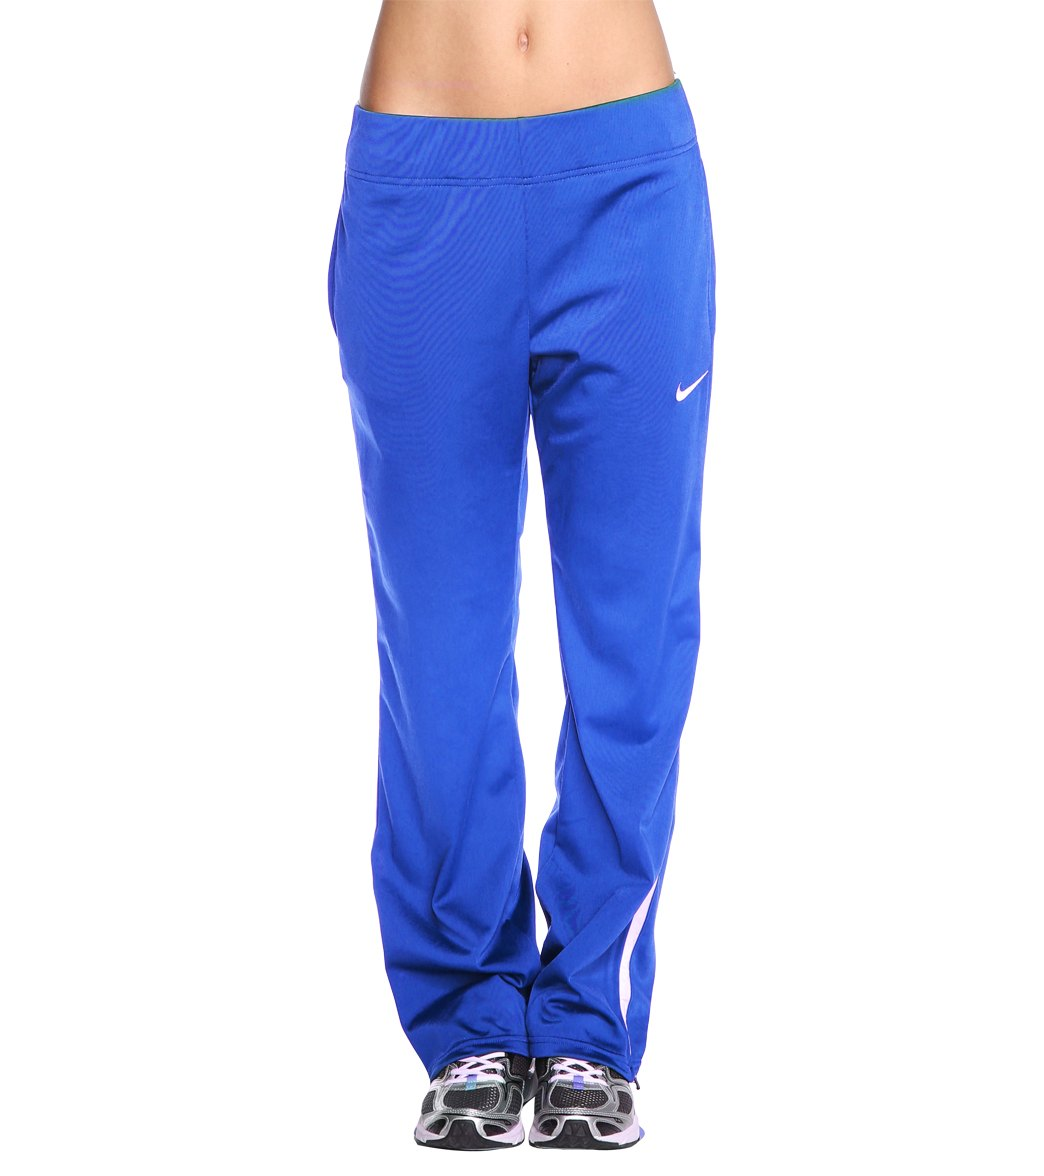 2caa51c97db8 Nike Swim Women s Overtime Warm-Up Pant at SwimOutlet.com